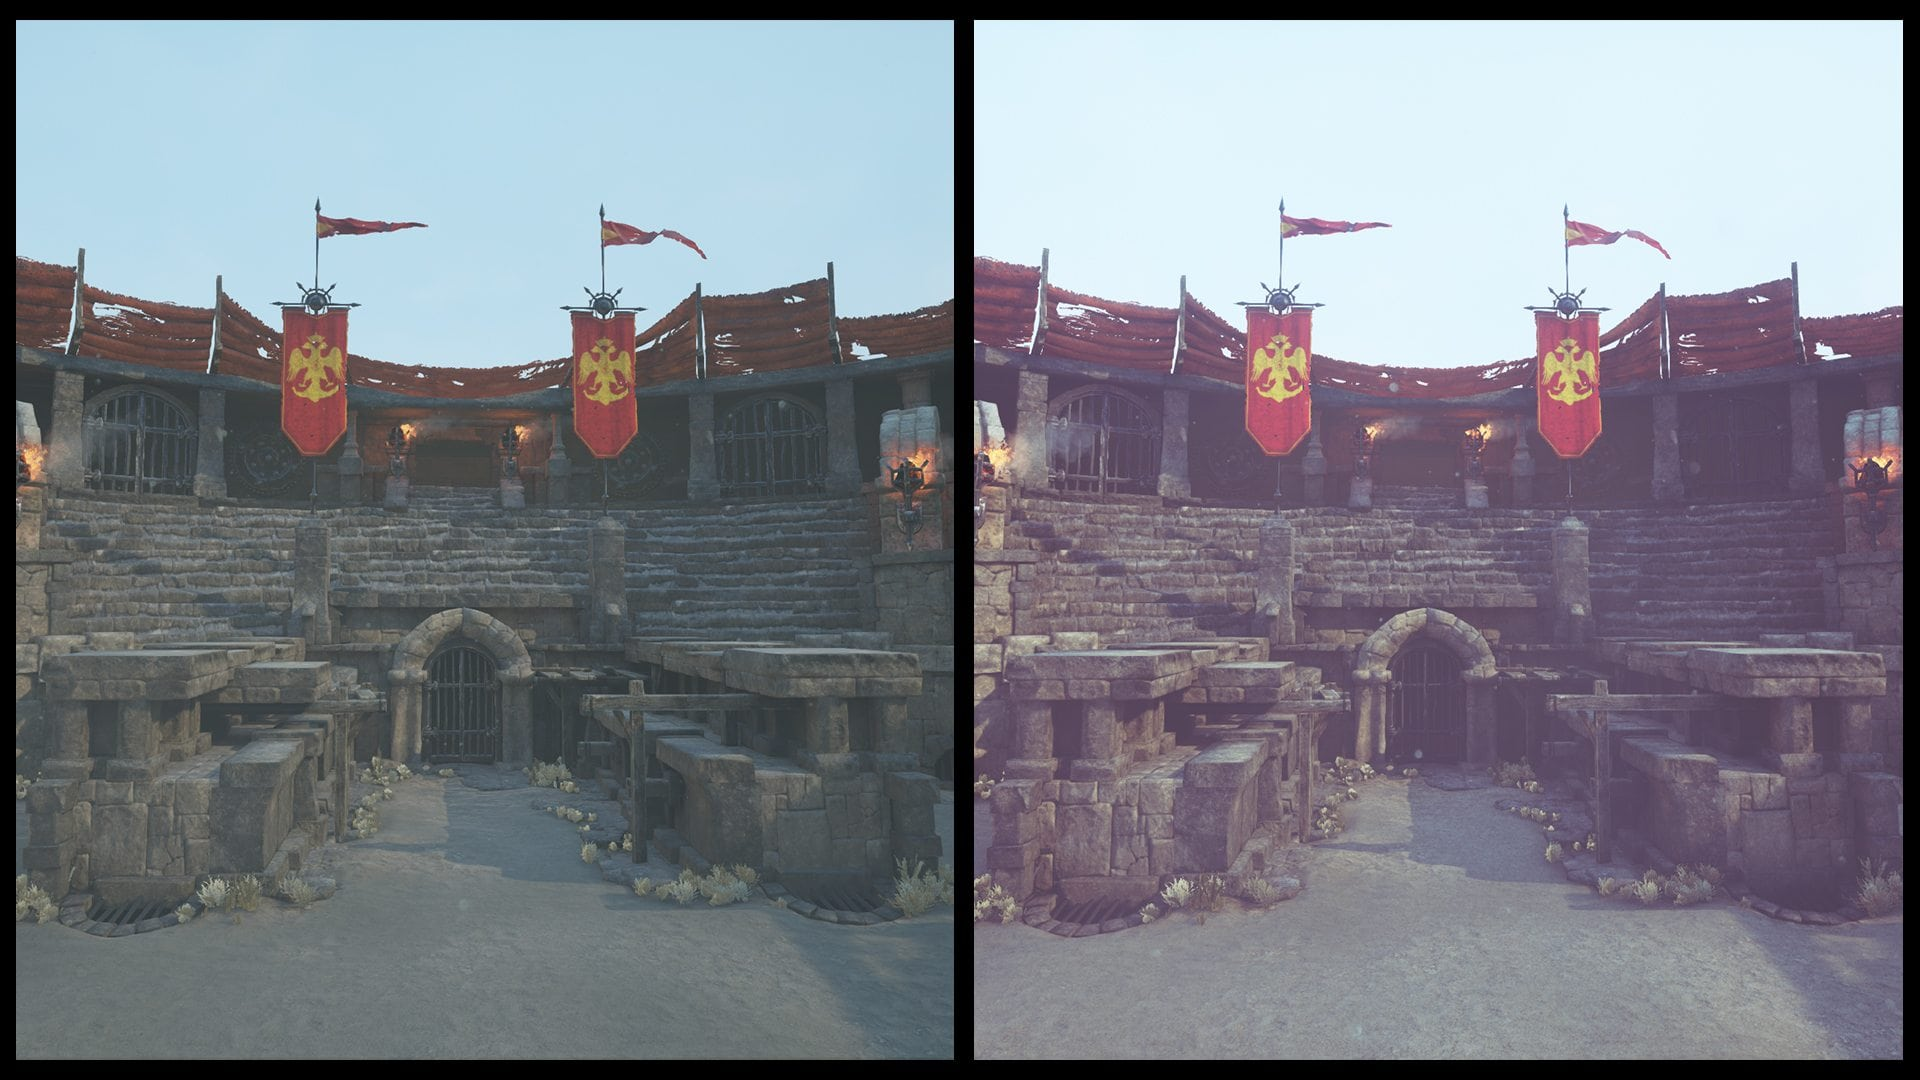 Image 25 - scene without (left) and with post processing (right)